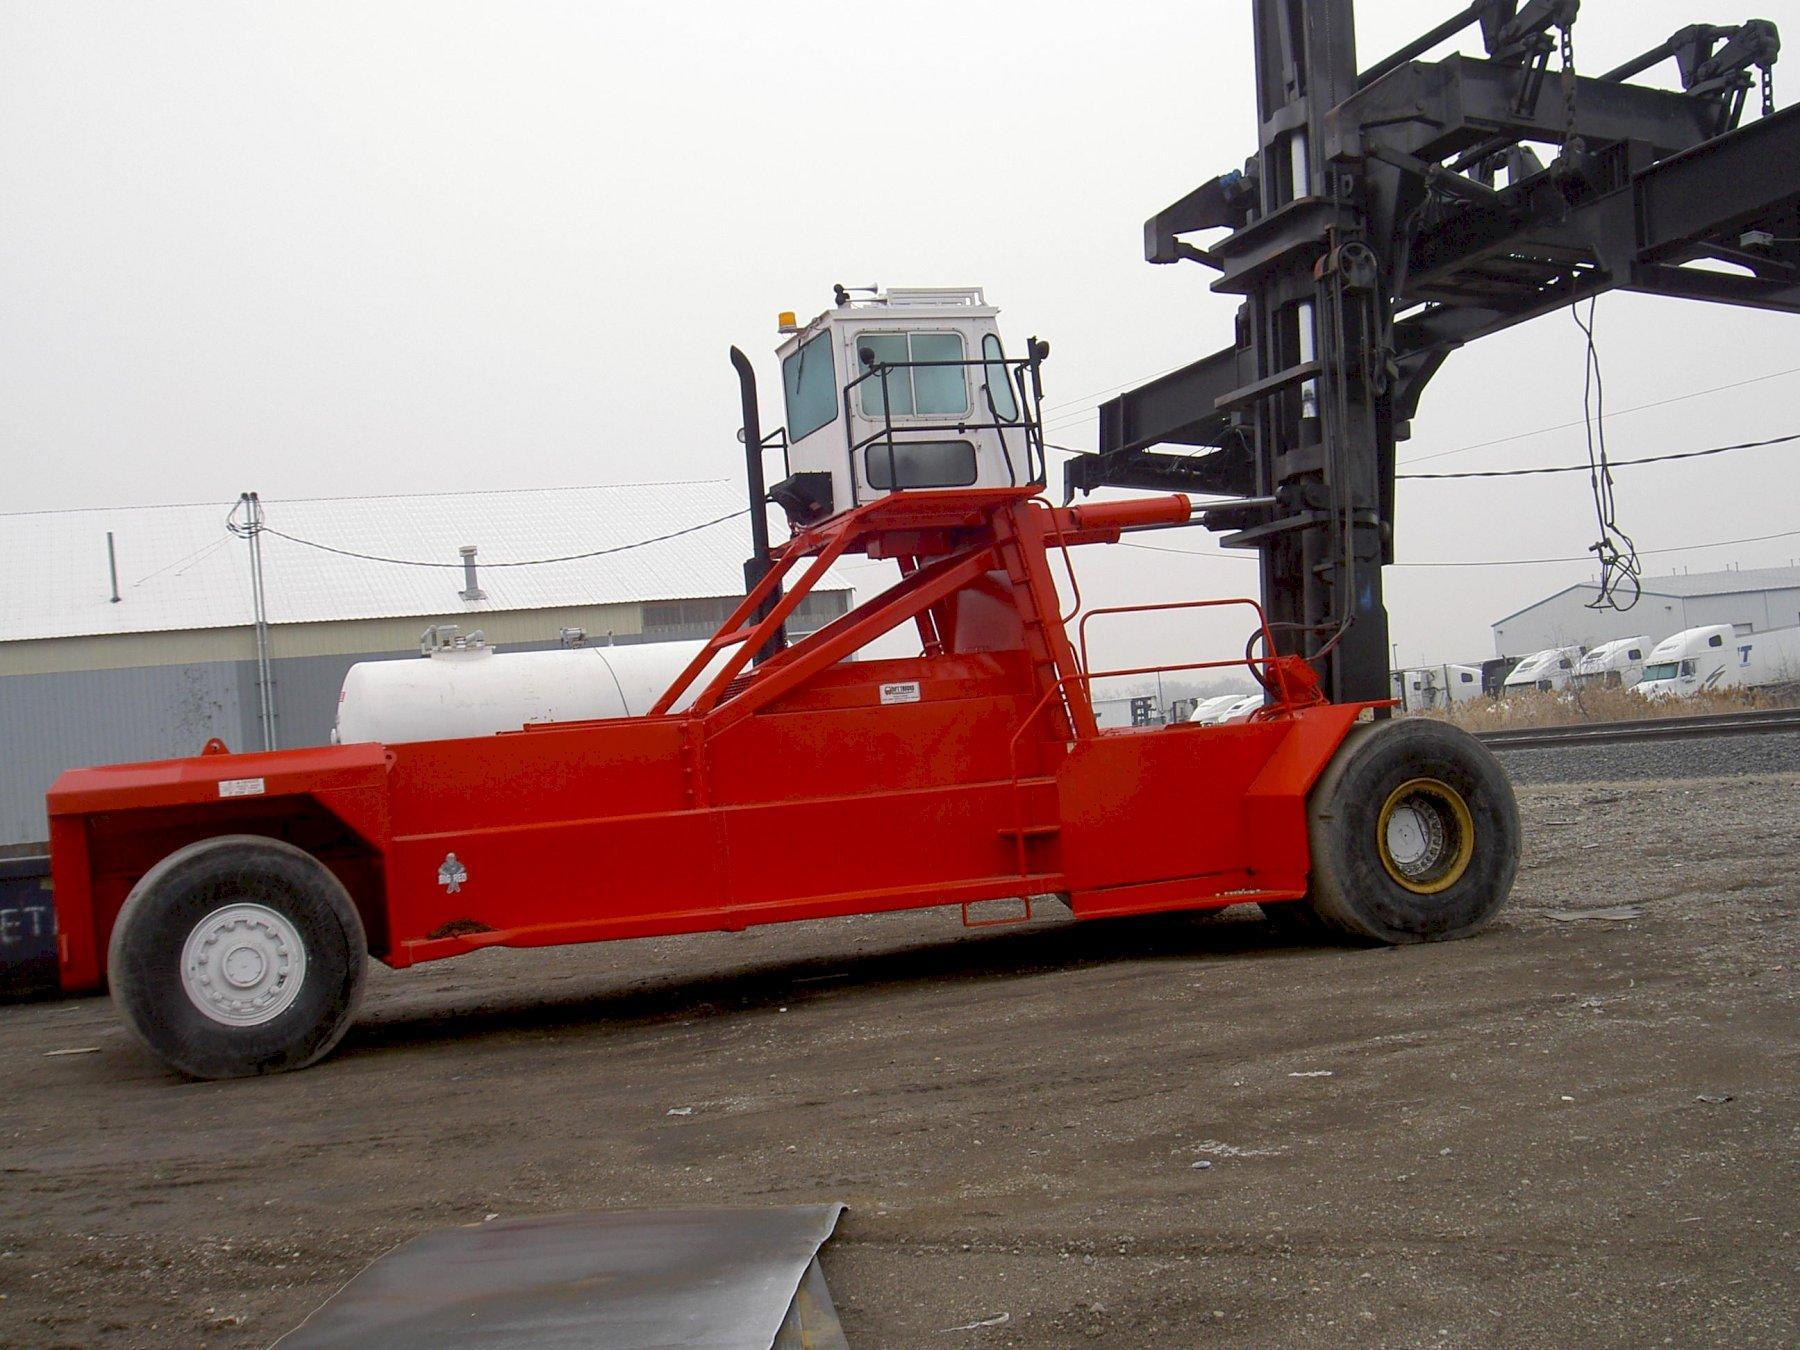 110,000 LBS TAYLOR MODEL TYTC110 FORLIFT WITH CONTAINTER LIFTER: 64988